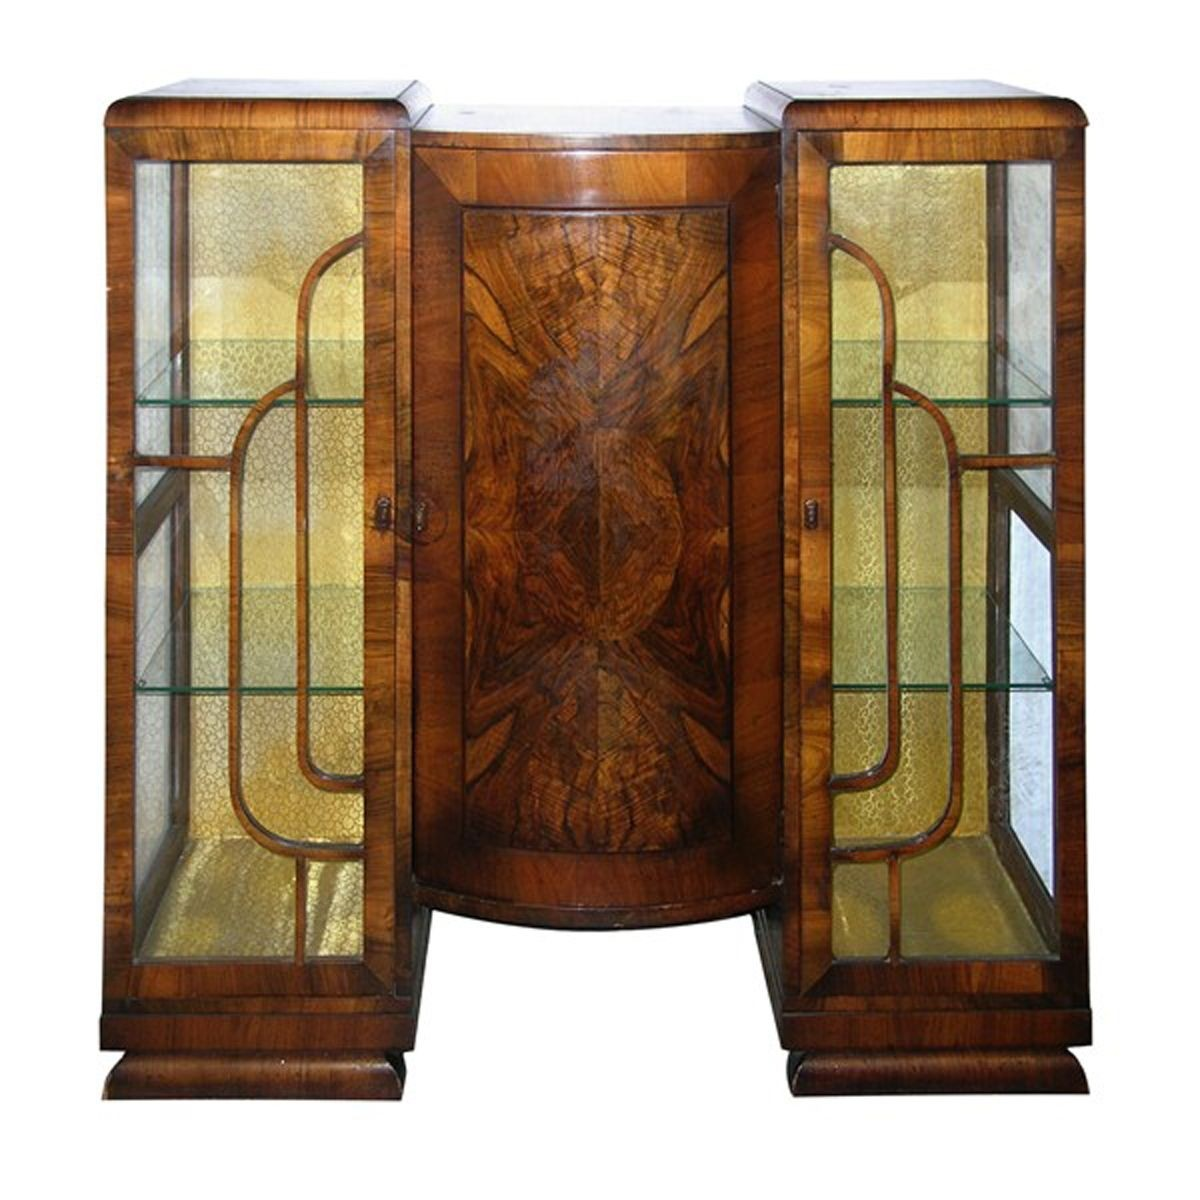 Walnut art deco bookcasecurio cabinet